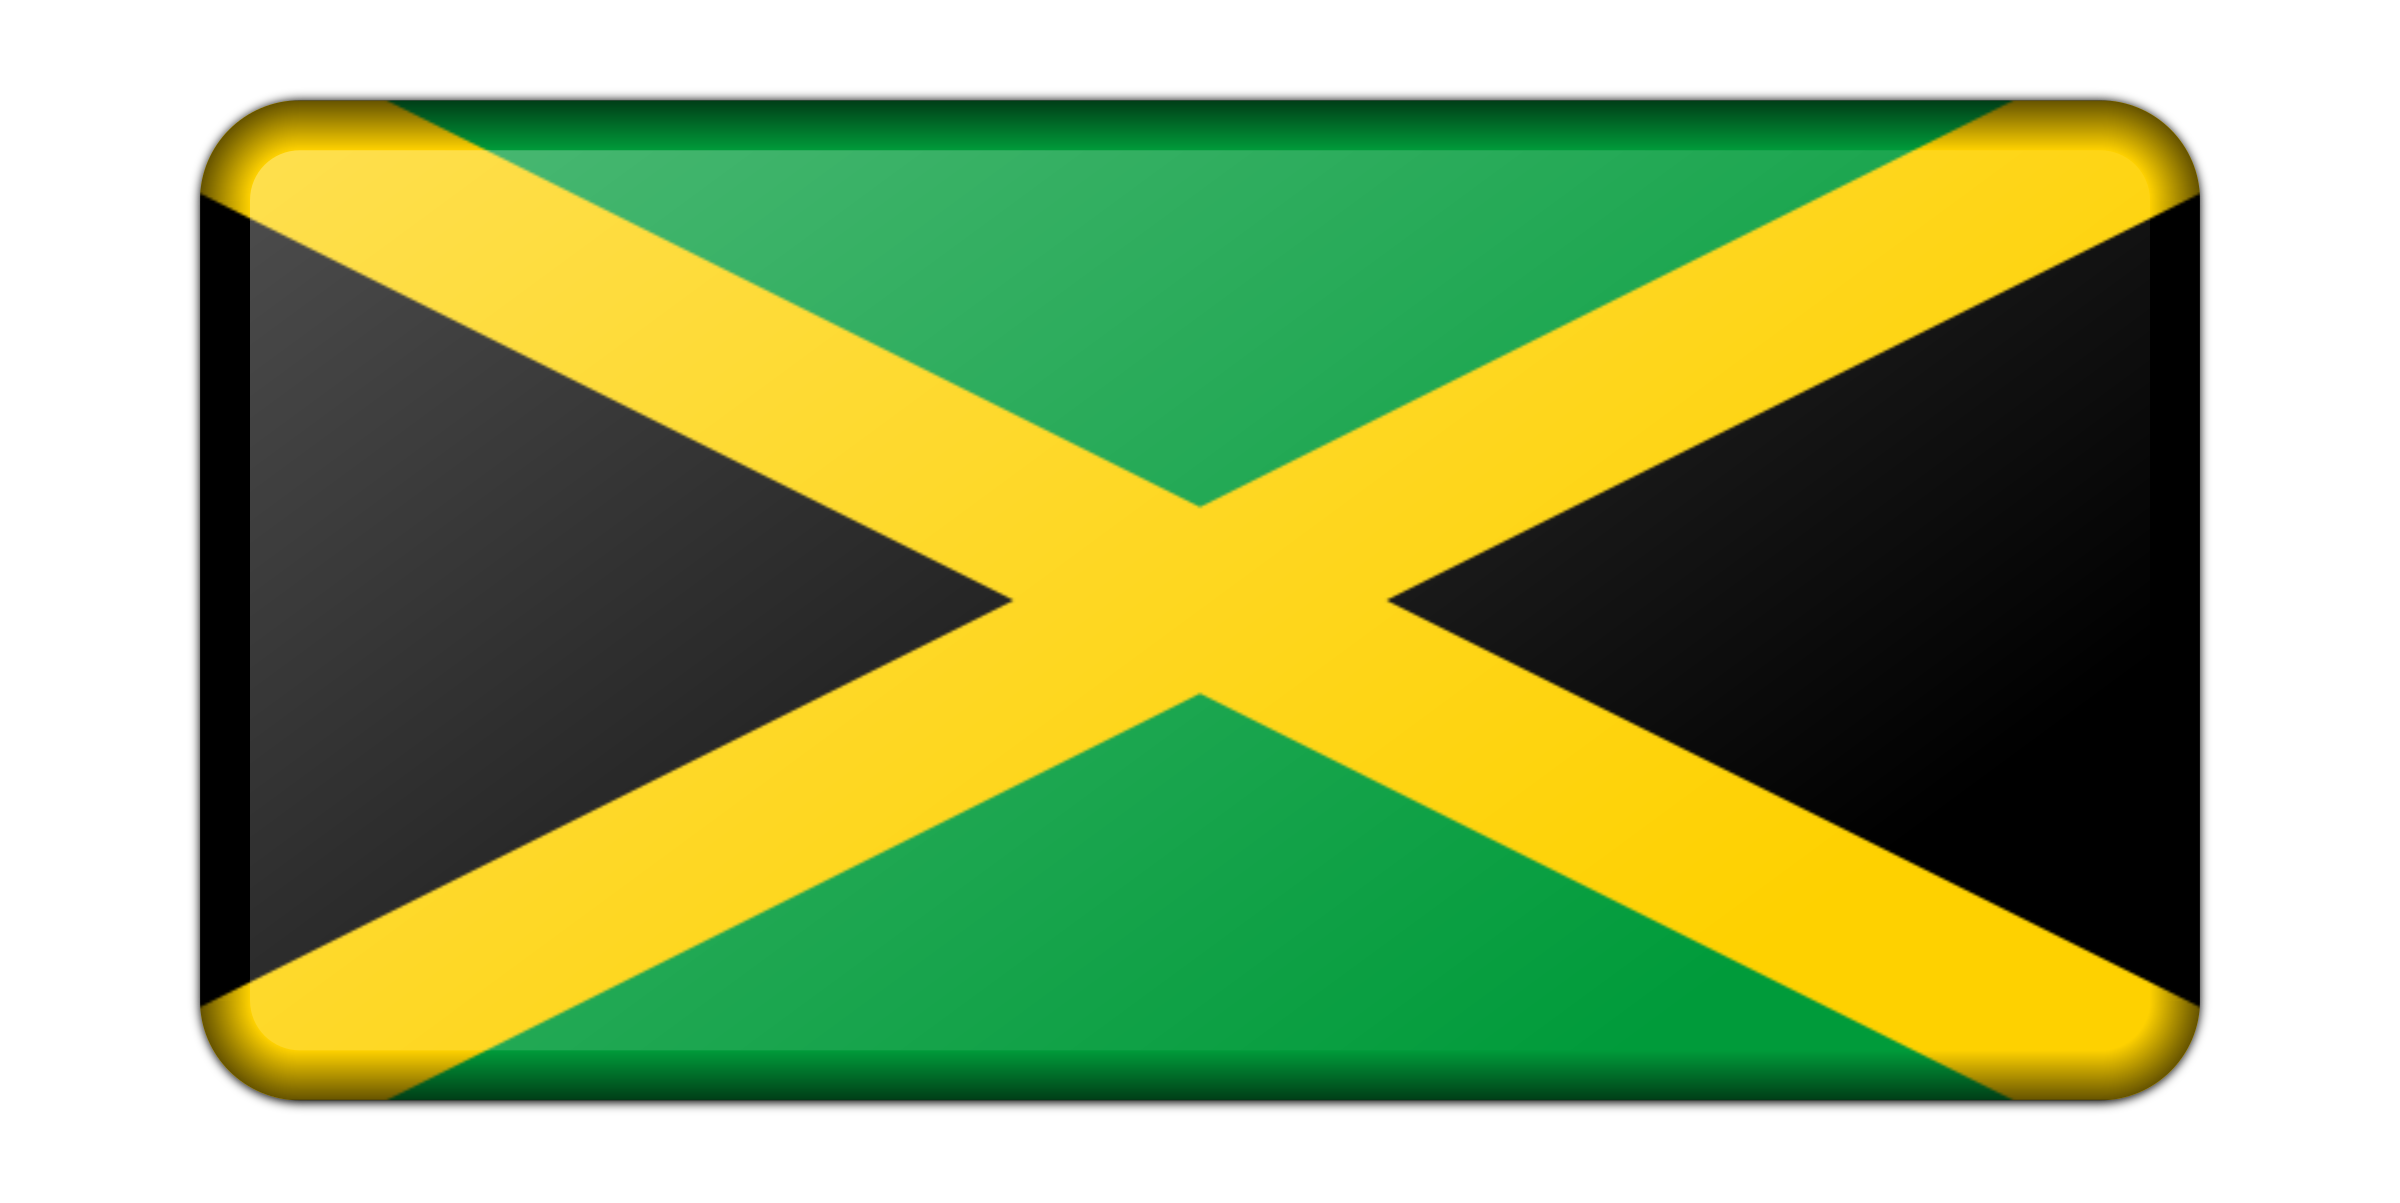 Jamaica flag (bevelled) by Firkin